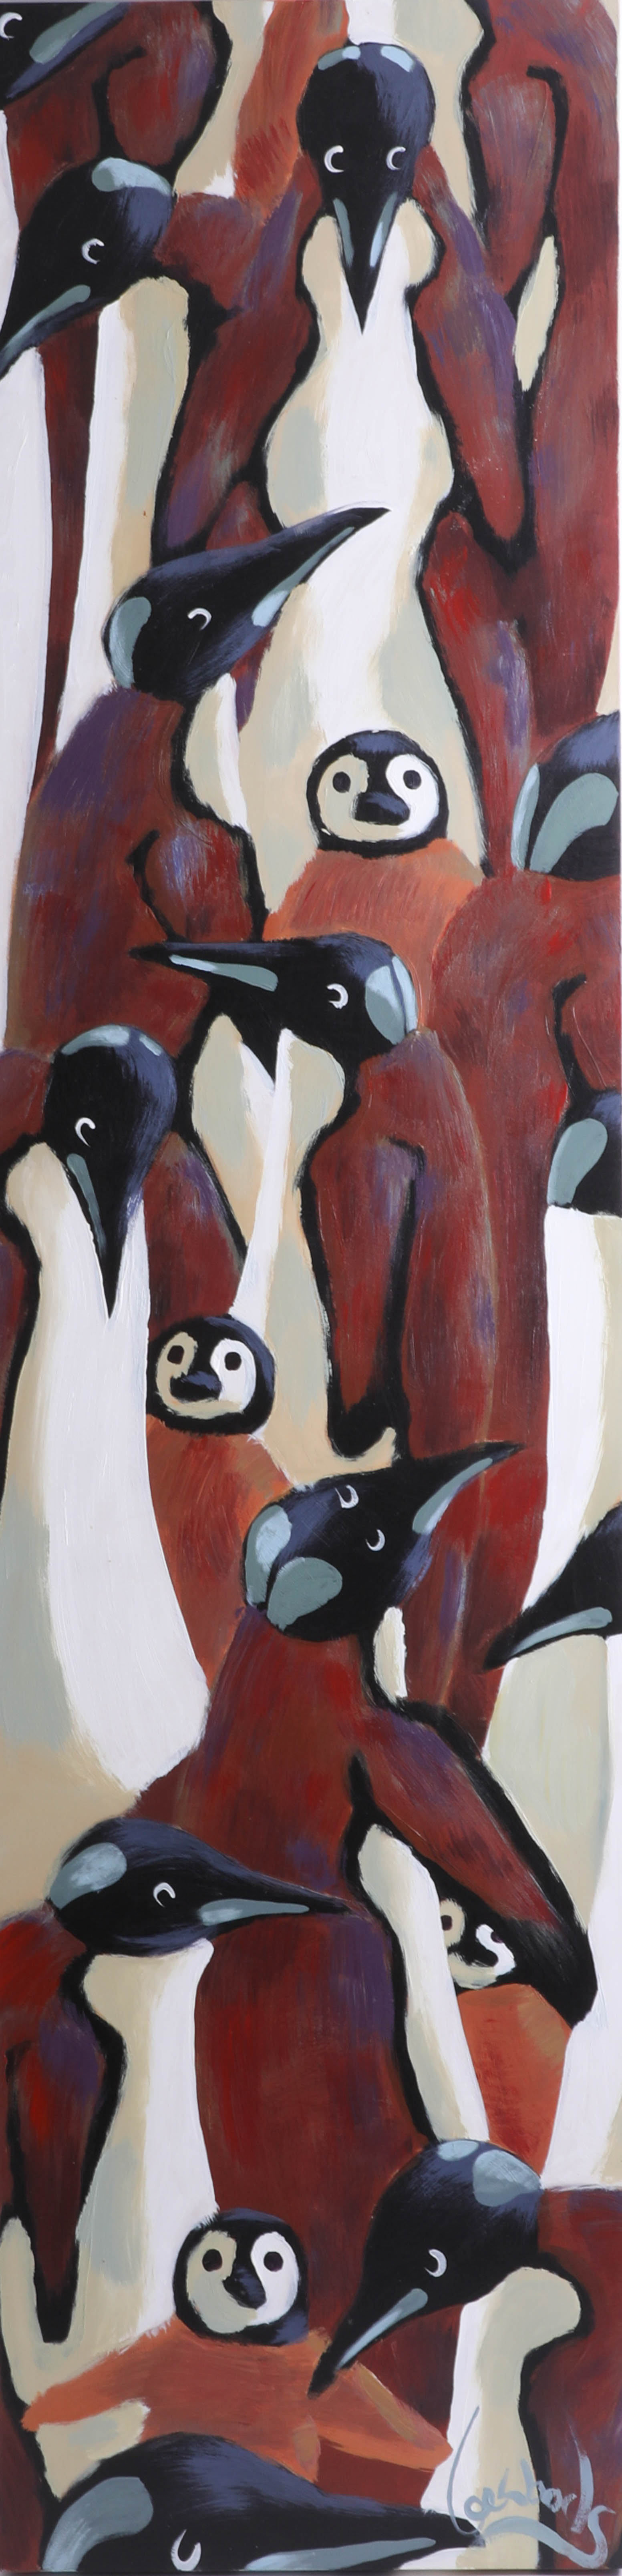 Lot 004 - Lee Woods, acrylic on wrap around board, 30cm by 122cm, Brown Penguins - Genetic Animals Series.